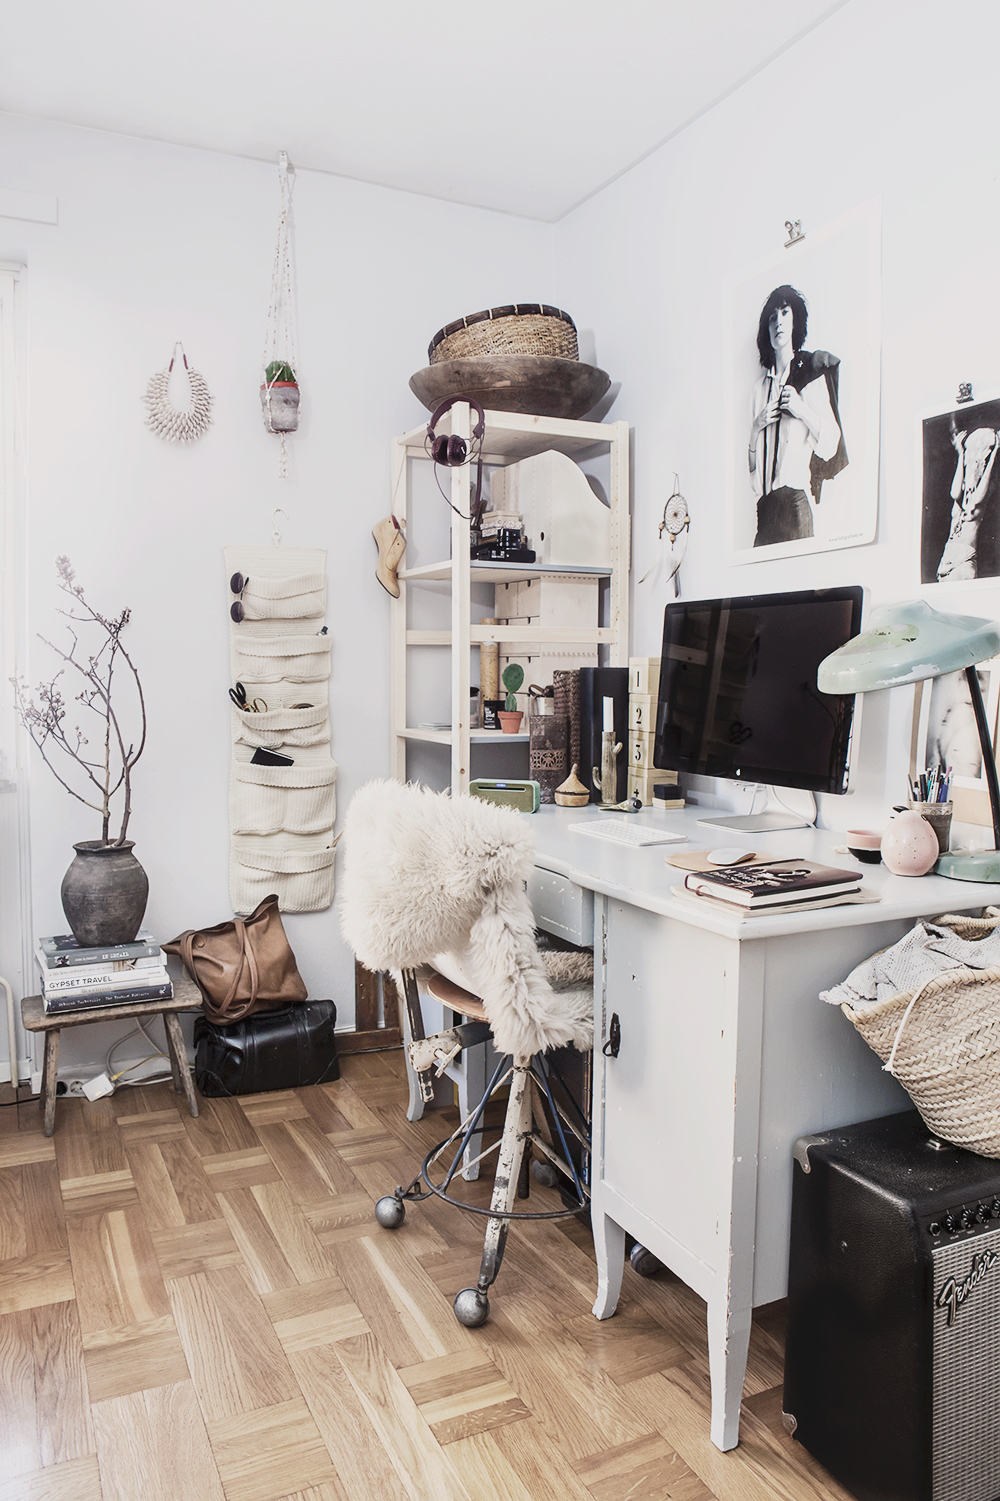 My working space ©Anna Malmberg